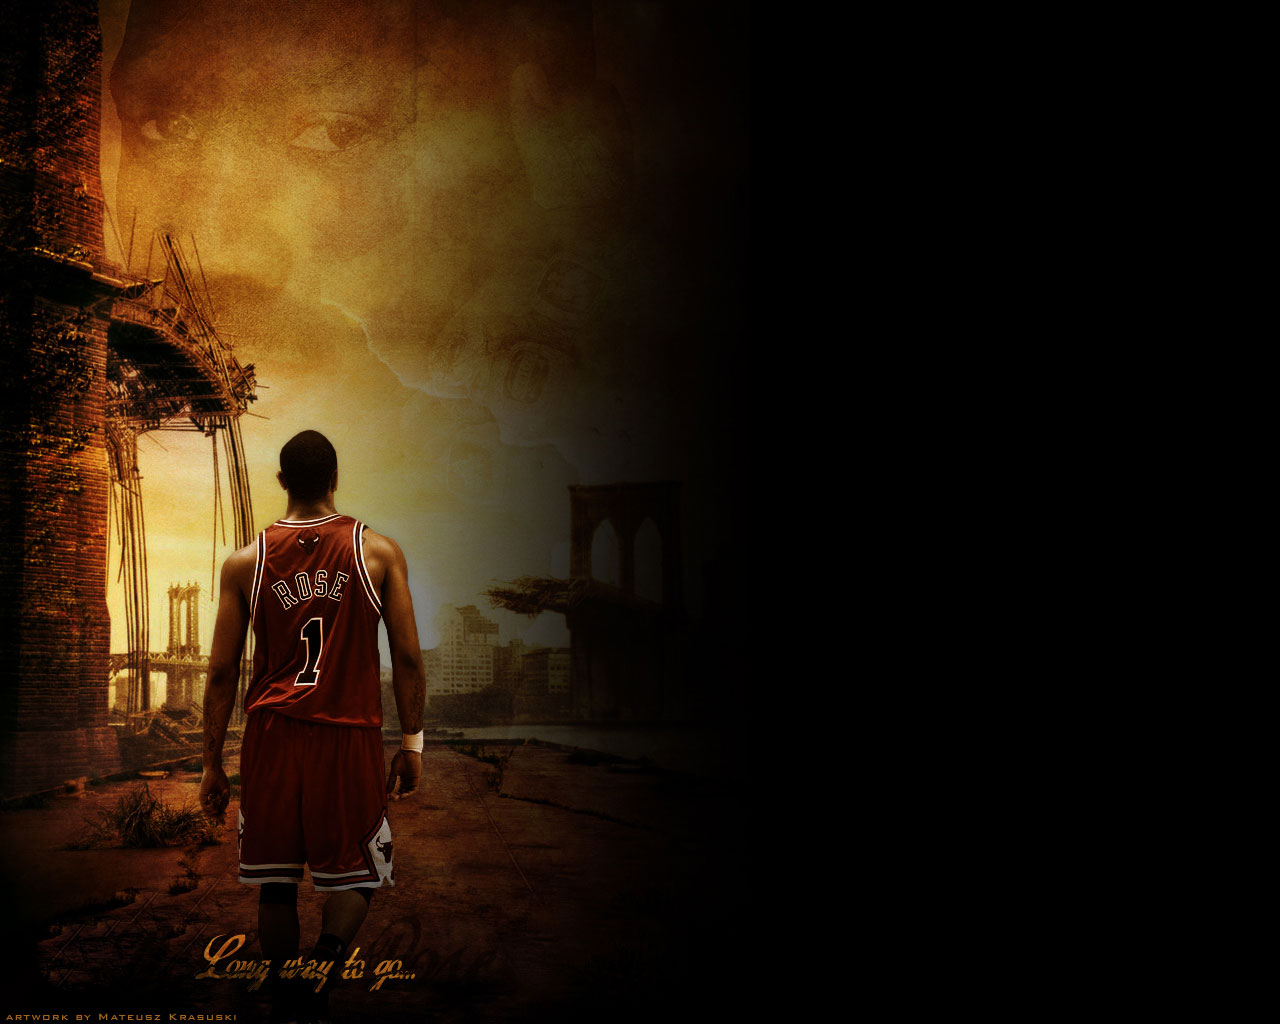 http://1.bp.blogspot.com/-xTko4dLlLOc/TV0x7leNHaI/AAAAAAAAADg/G0odntOmisM/s1600/Derrick-Rose-Long-Way-To-Go-Wallpaper.jpg